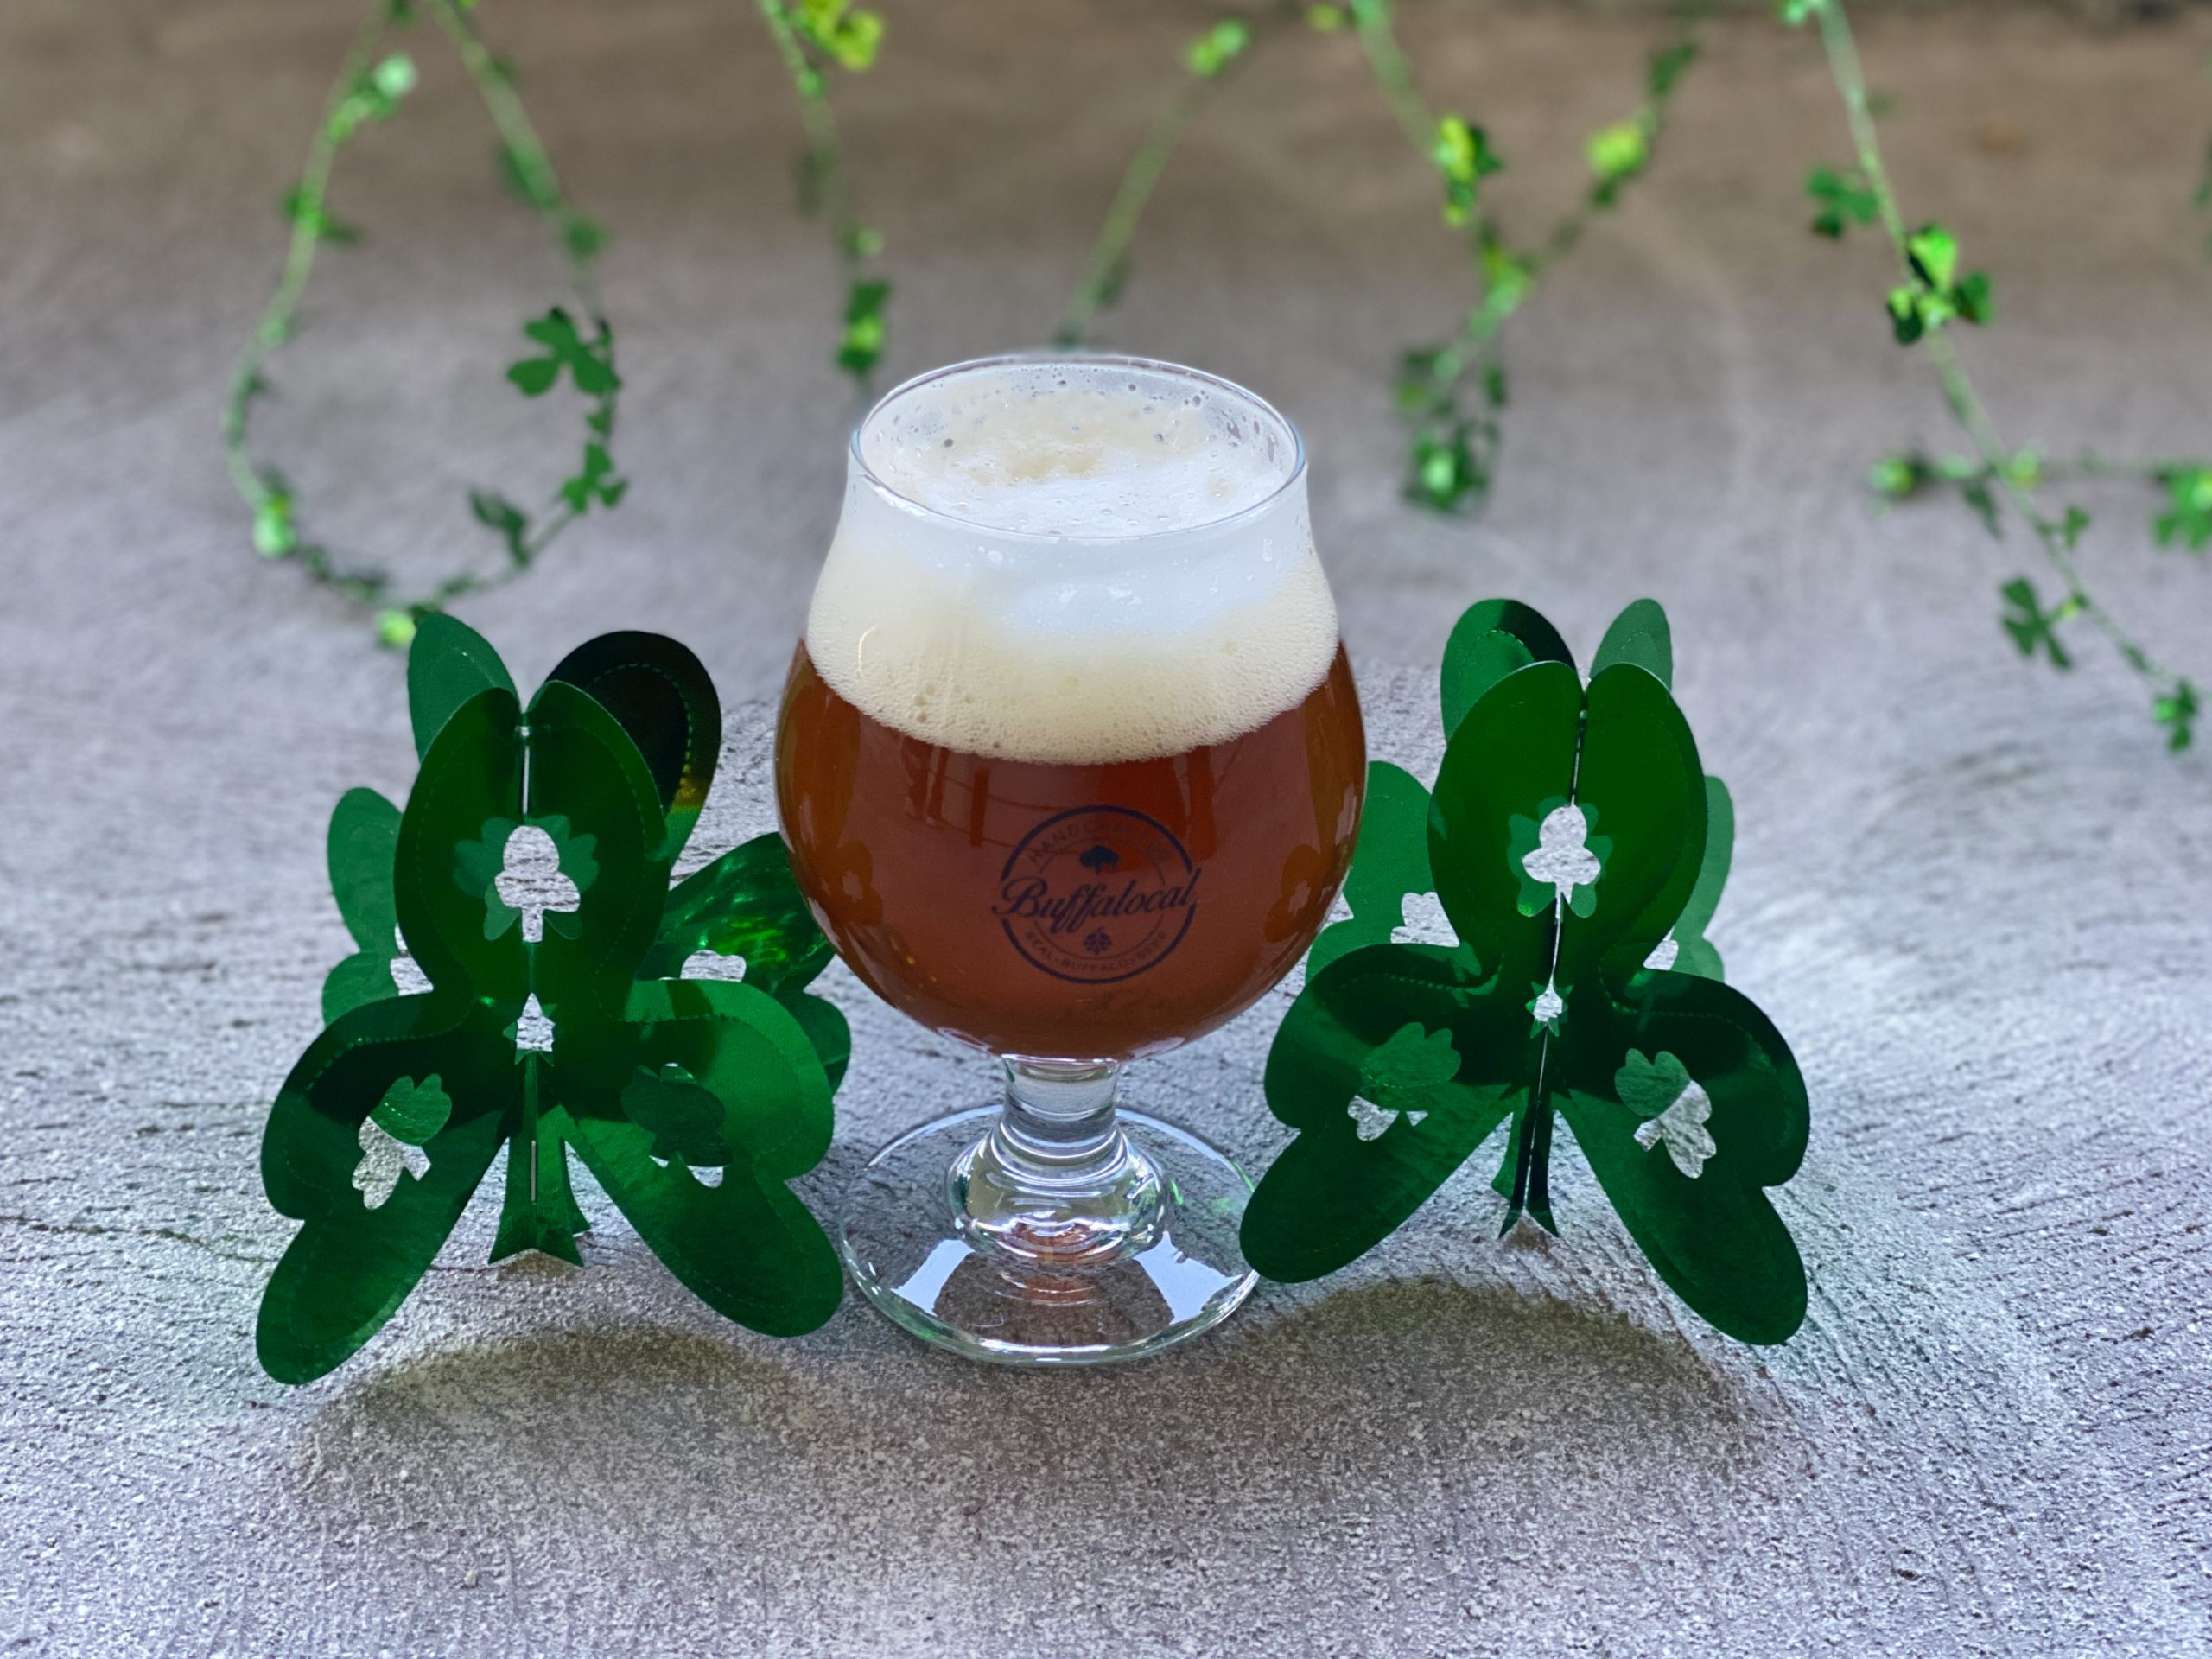 Buffalo craft beer Irish red